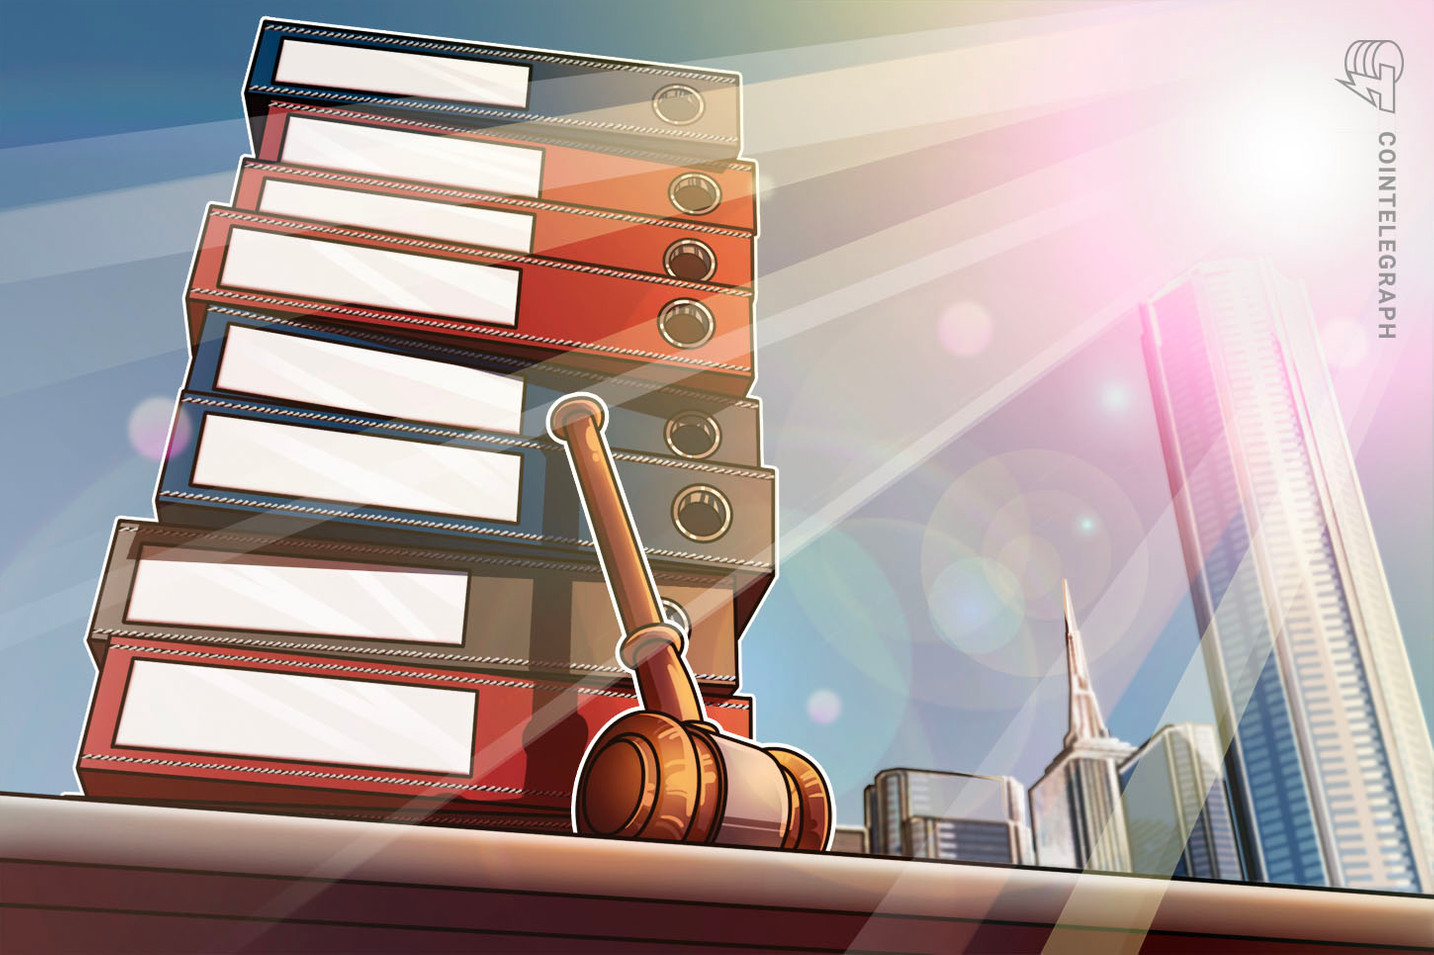 US SEC Seeks to Reopen Case Against Bitcoin Fraudster, Seeks Penalties